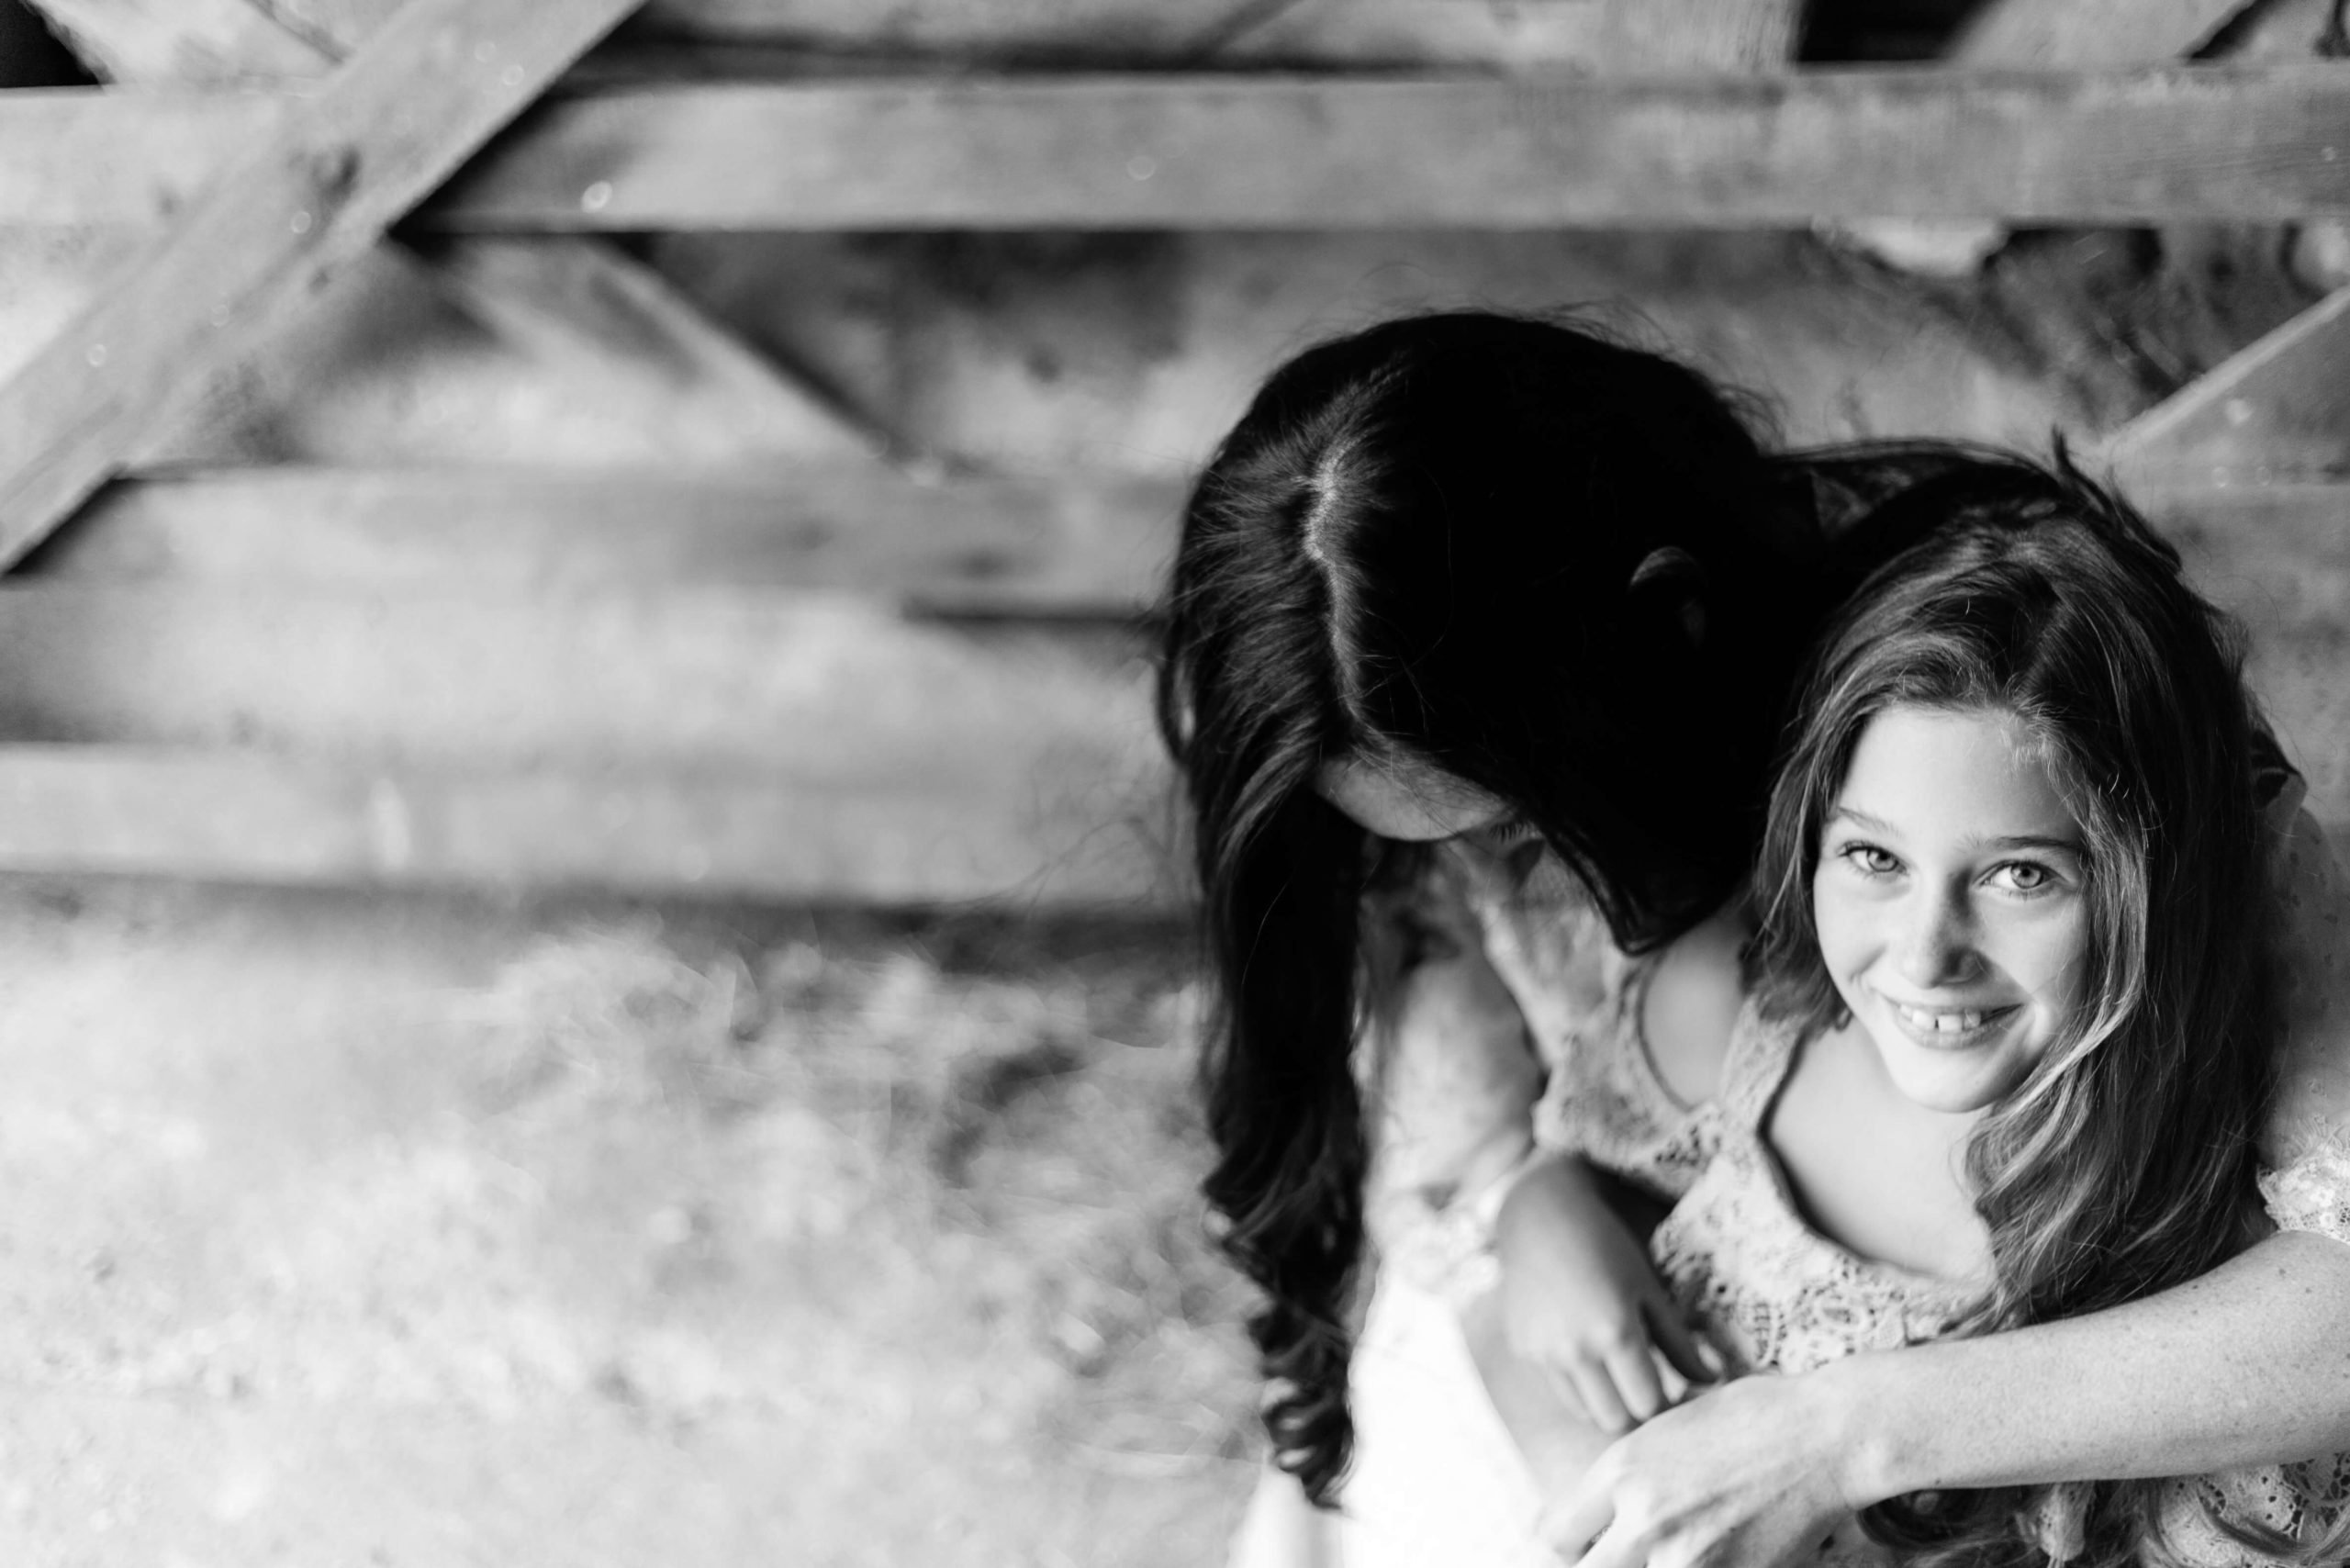 black and white image of mother and daughter by gate, girl looks to camera and mum looks down by Chelmsford photographer Kika mitchell photography